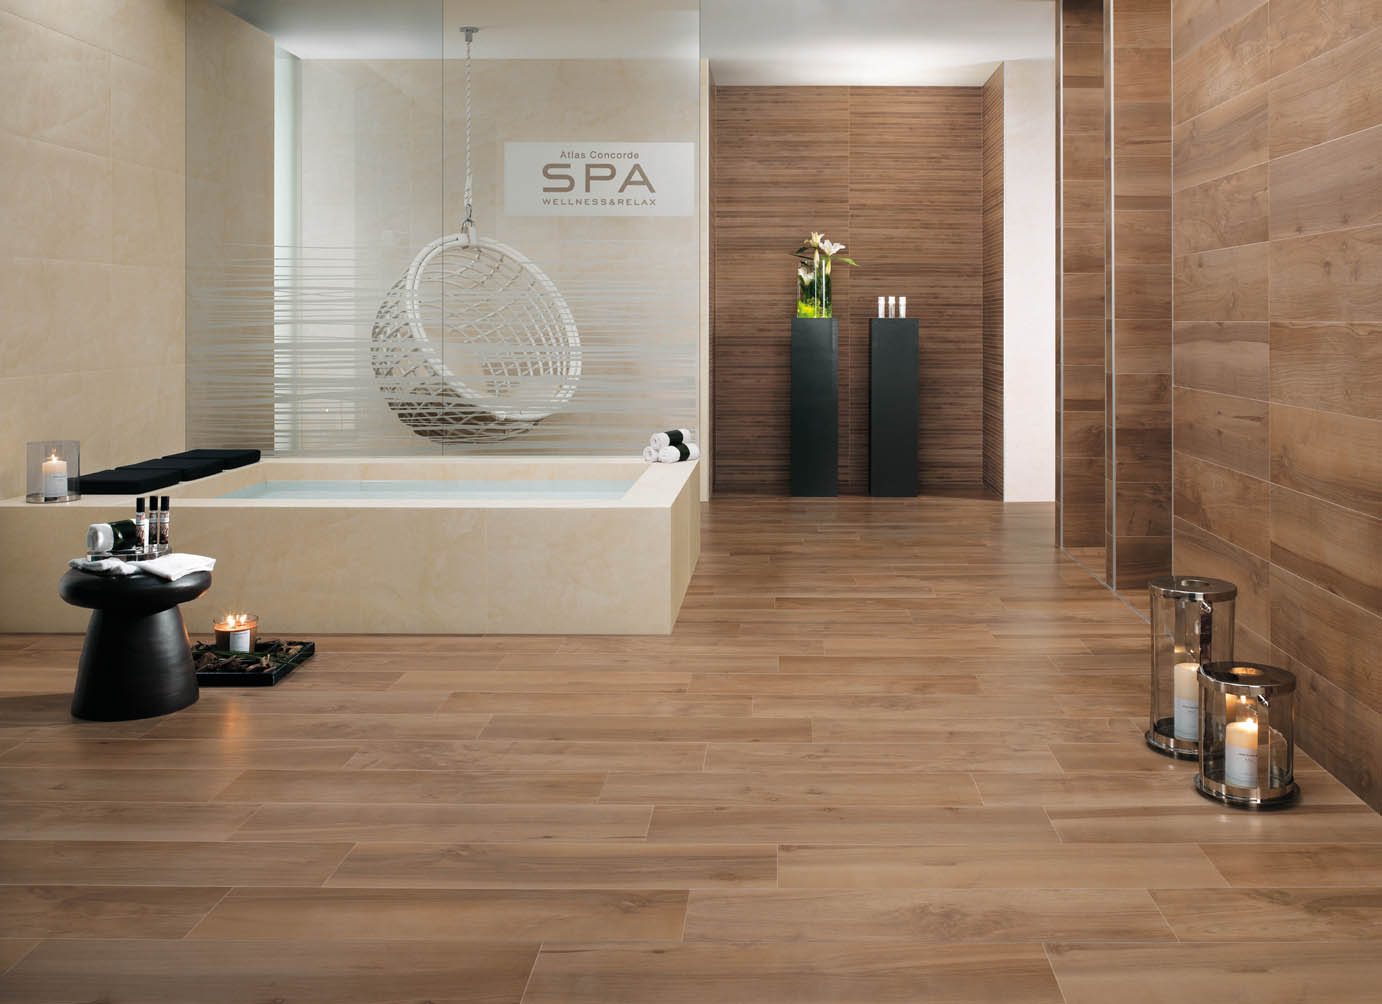 Carrelages int imitations parquets bois duc for Carrelage parquet salle de bain